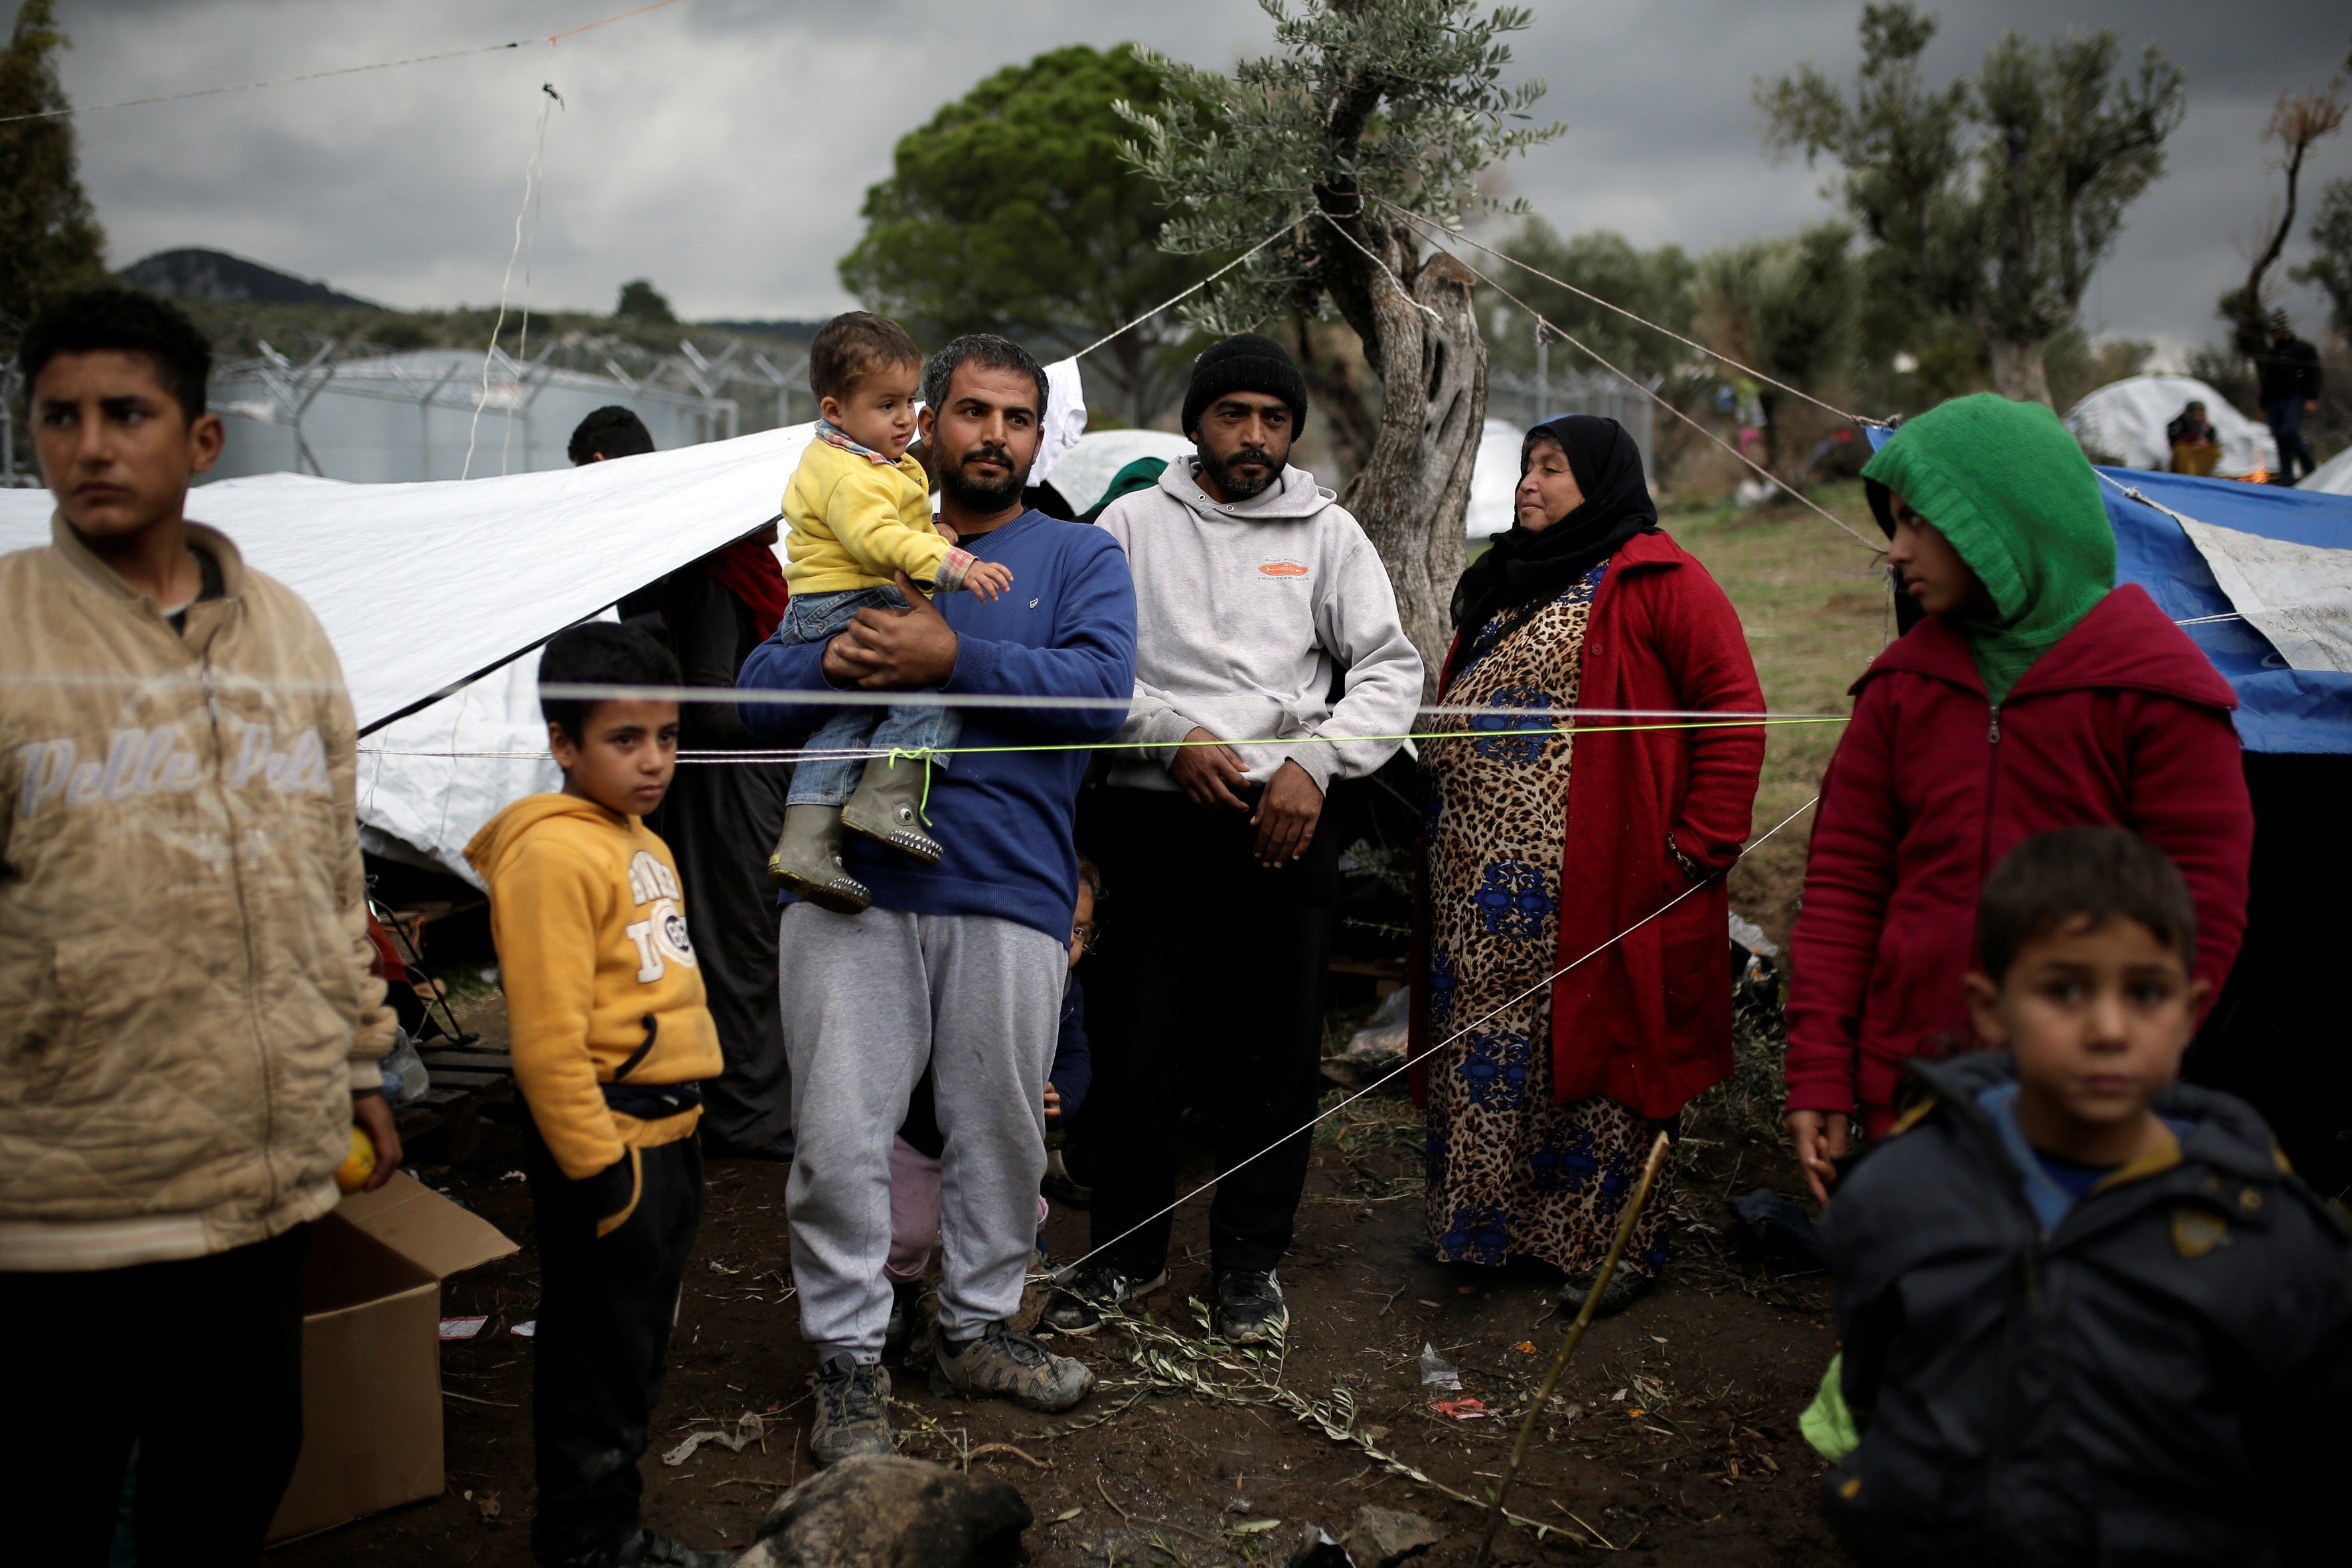 "Syrian refugee Bashar Wakaa (3rd L) and his family stand in front of their tents at a makeshift camp for refugees and migrants next to the Moria camp on the island of Lesbos, Greece, November 30, 2017. REUTERS/Alkis Konstantinidis SEARCH ""MORIA CAMP"" FOR THIS STORY. SEARCH ""WIDER IMAGE"" FOR ALL STORIES. - RC1F728A1580"